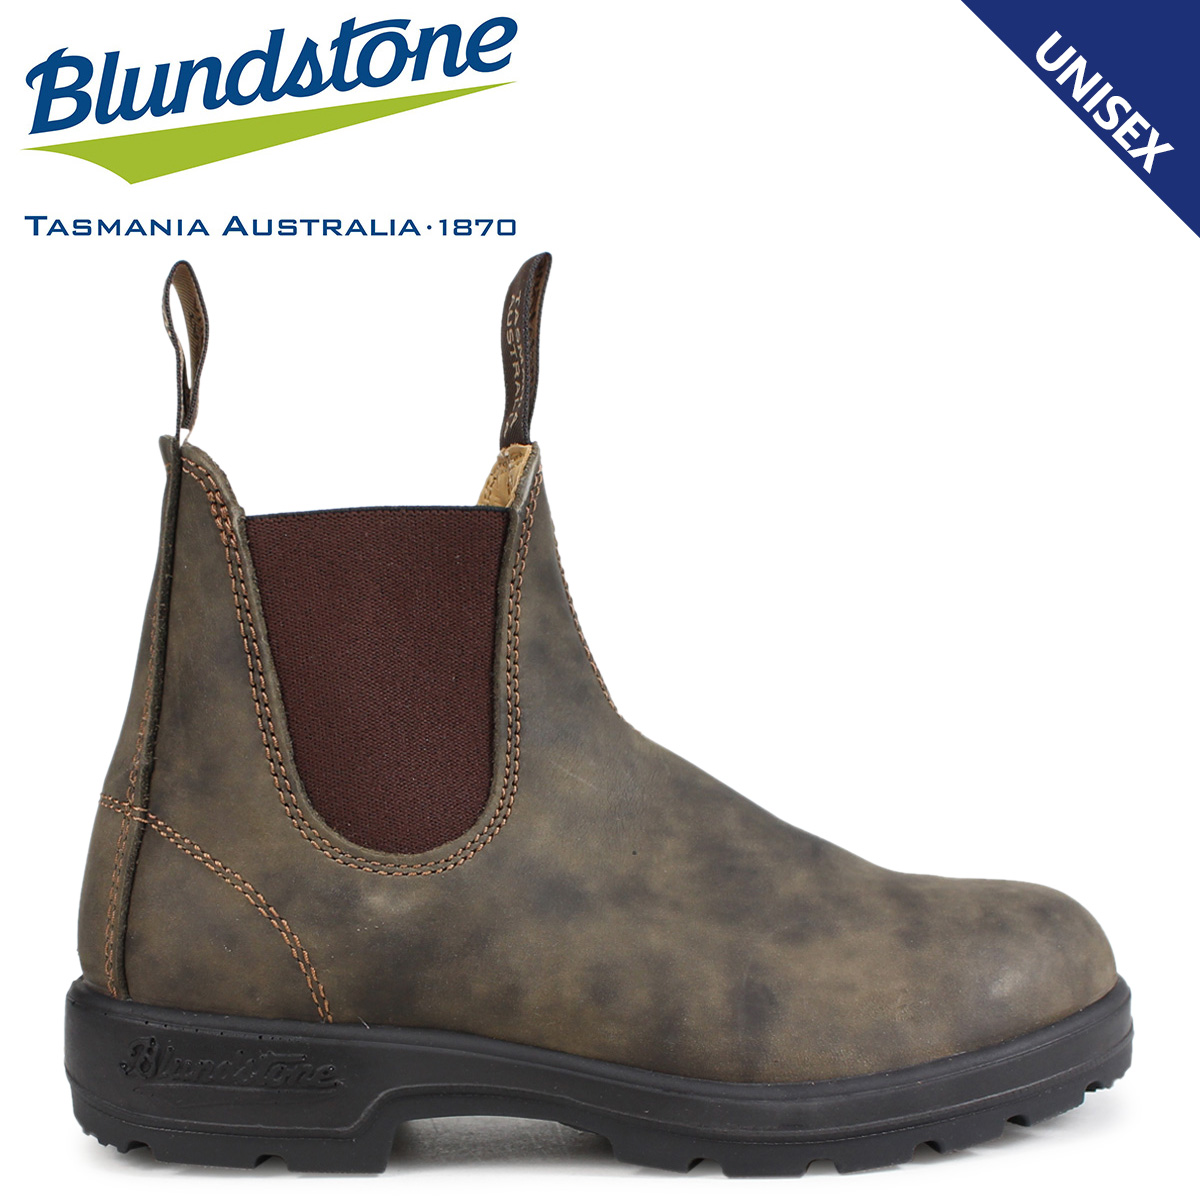 27fe39101dd5 Brand stone Blundstone side Gore men gap Dis boots SUPER 550 BOOTS 585  brown  load planned Shinnyu load in reservation product 12 28 containing